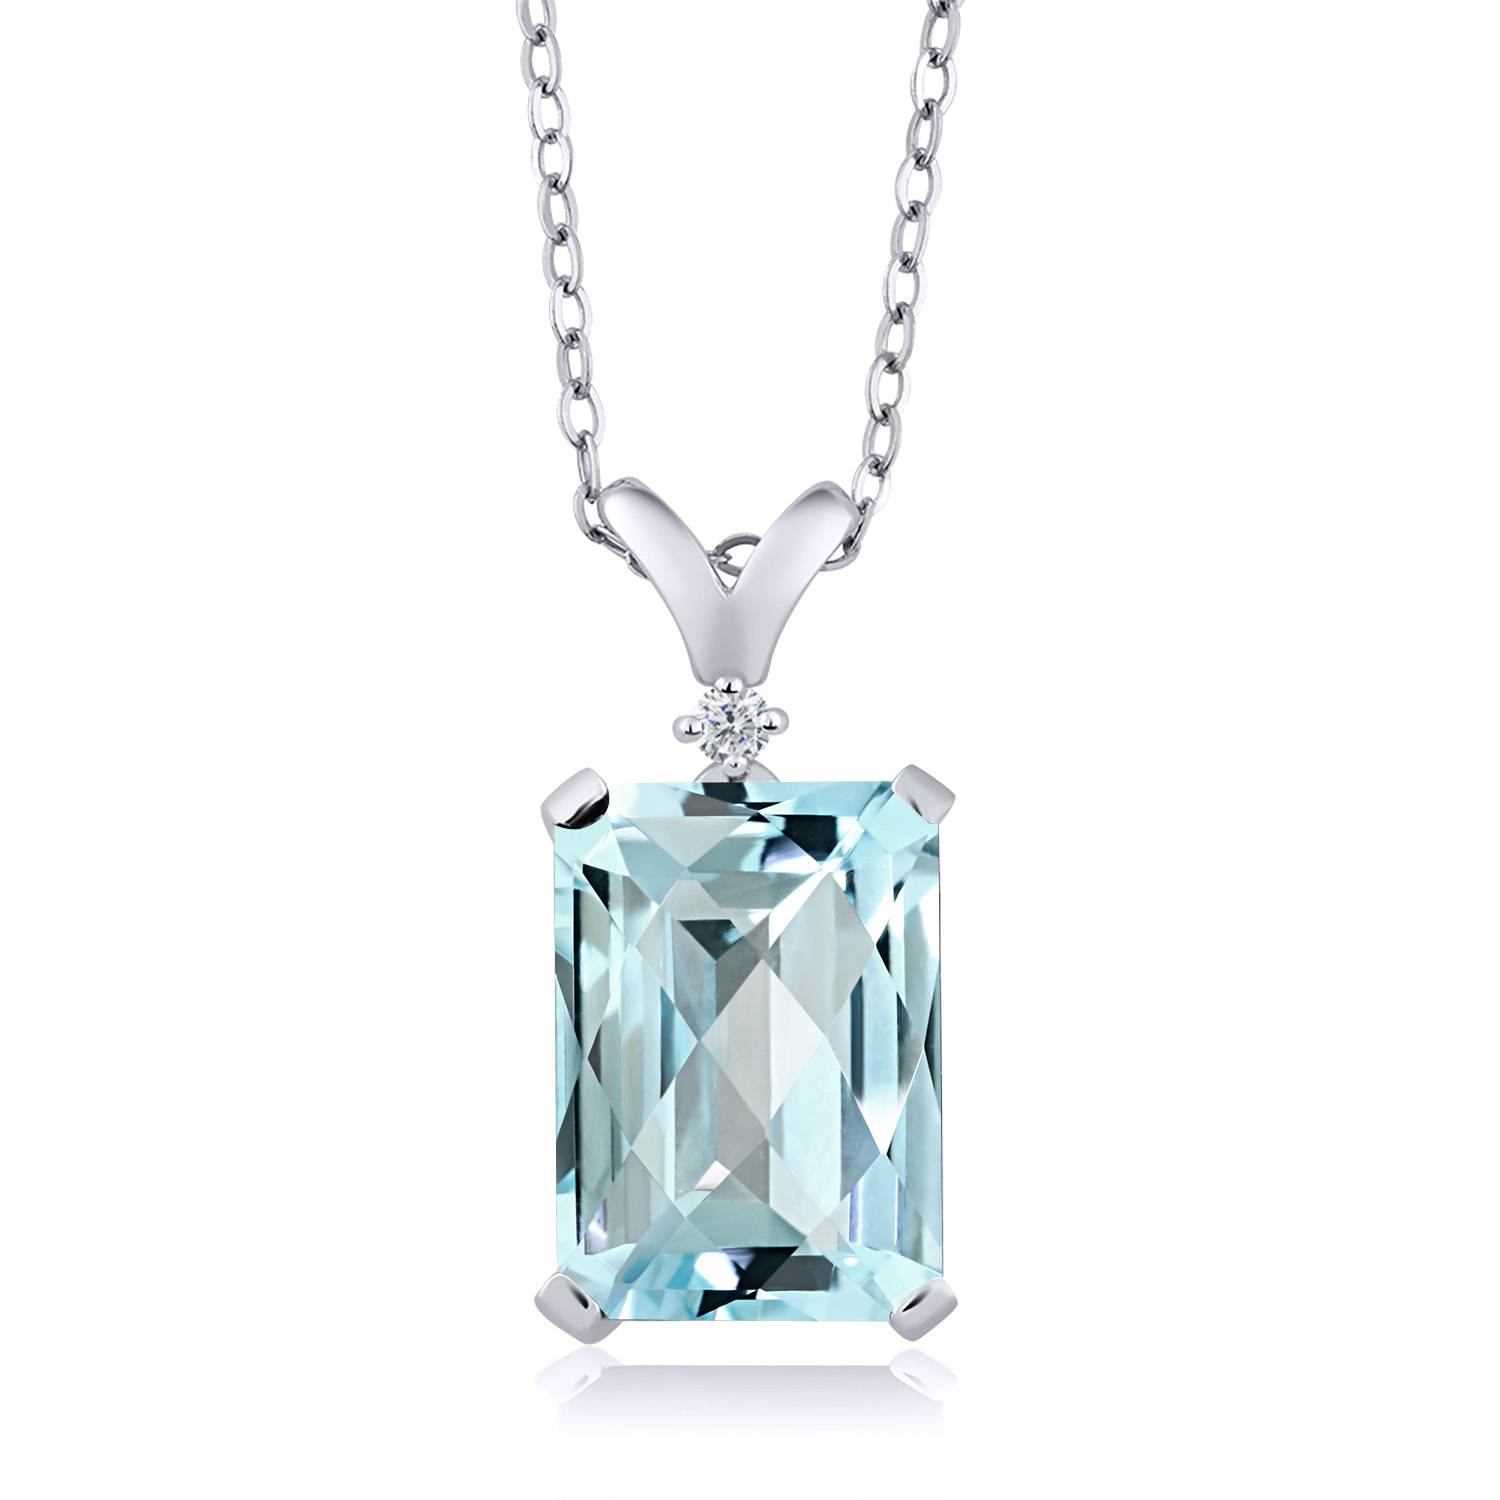 Snap-7x5mm-8x6mm-10x8mm Pendant-Setting Sterling Silver USA 4 Prong-Octagon